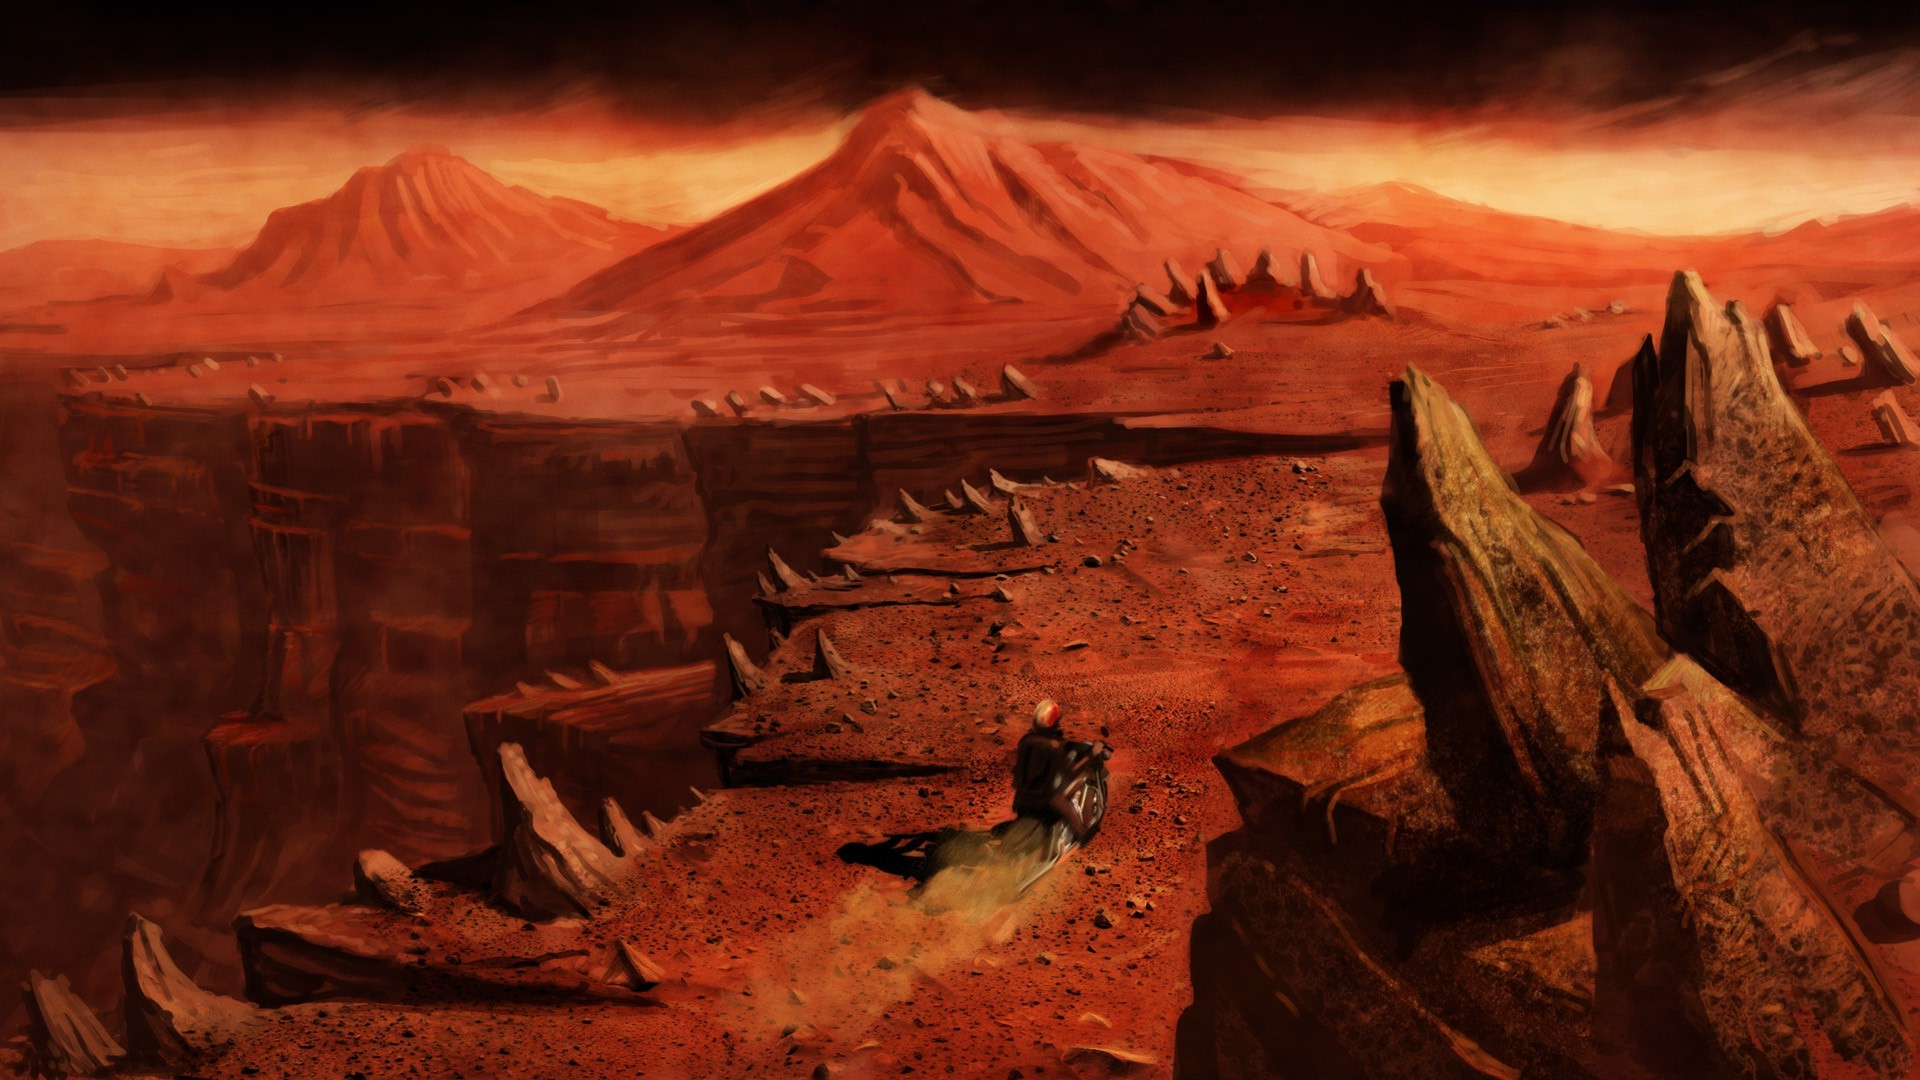 Desktop Wallpaper Hd 3d Full Screen God Mars Fantasy Art Wallpapers Hd Desktop And Mobile